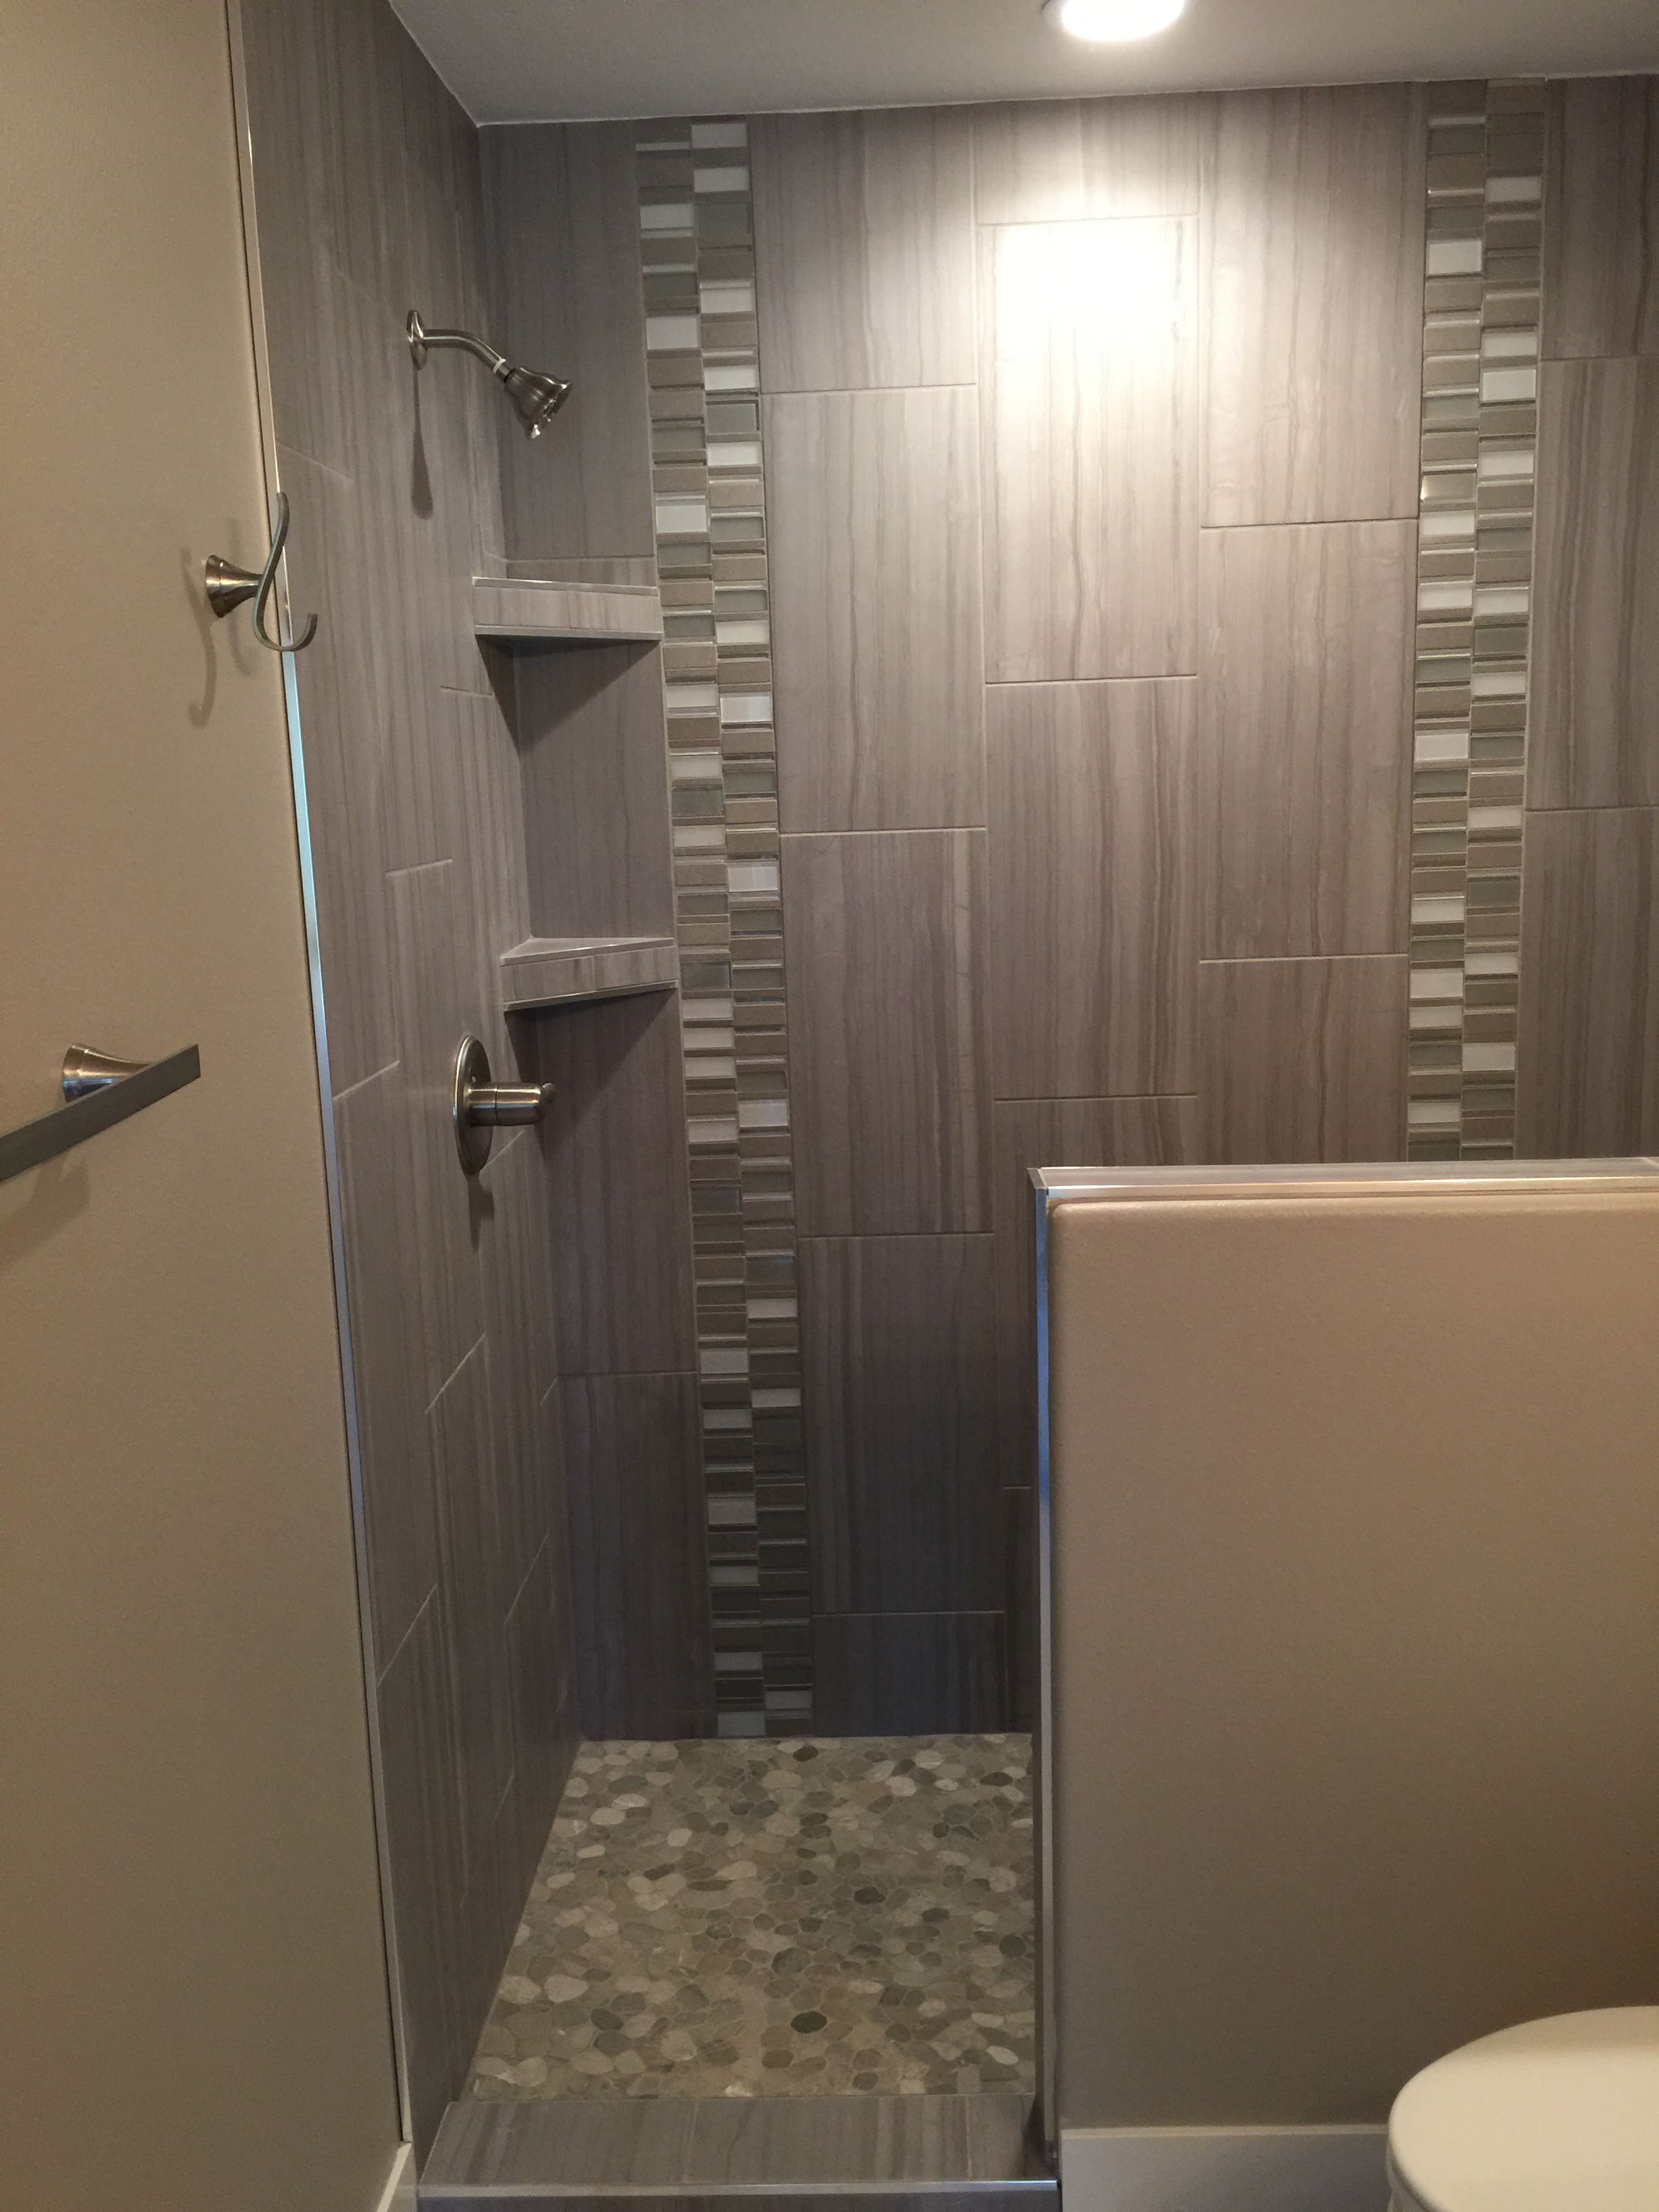 Custom Tiled Shower In 12x24 Porcelain Tile Installed At A 1 3 Staggered Vertically With A Glass And S Custom Tile Shower Shower Wall Tile Vertical Shower Tile